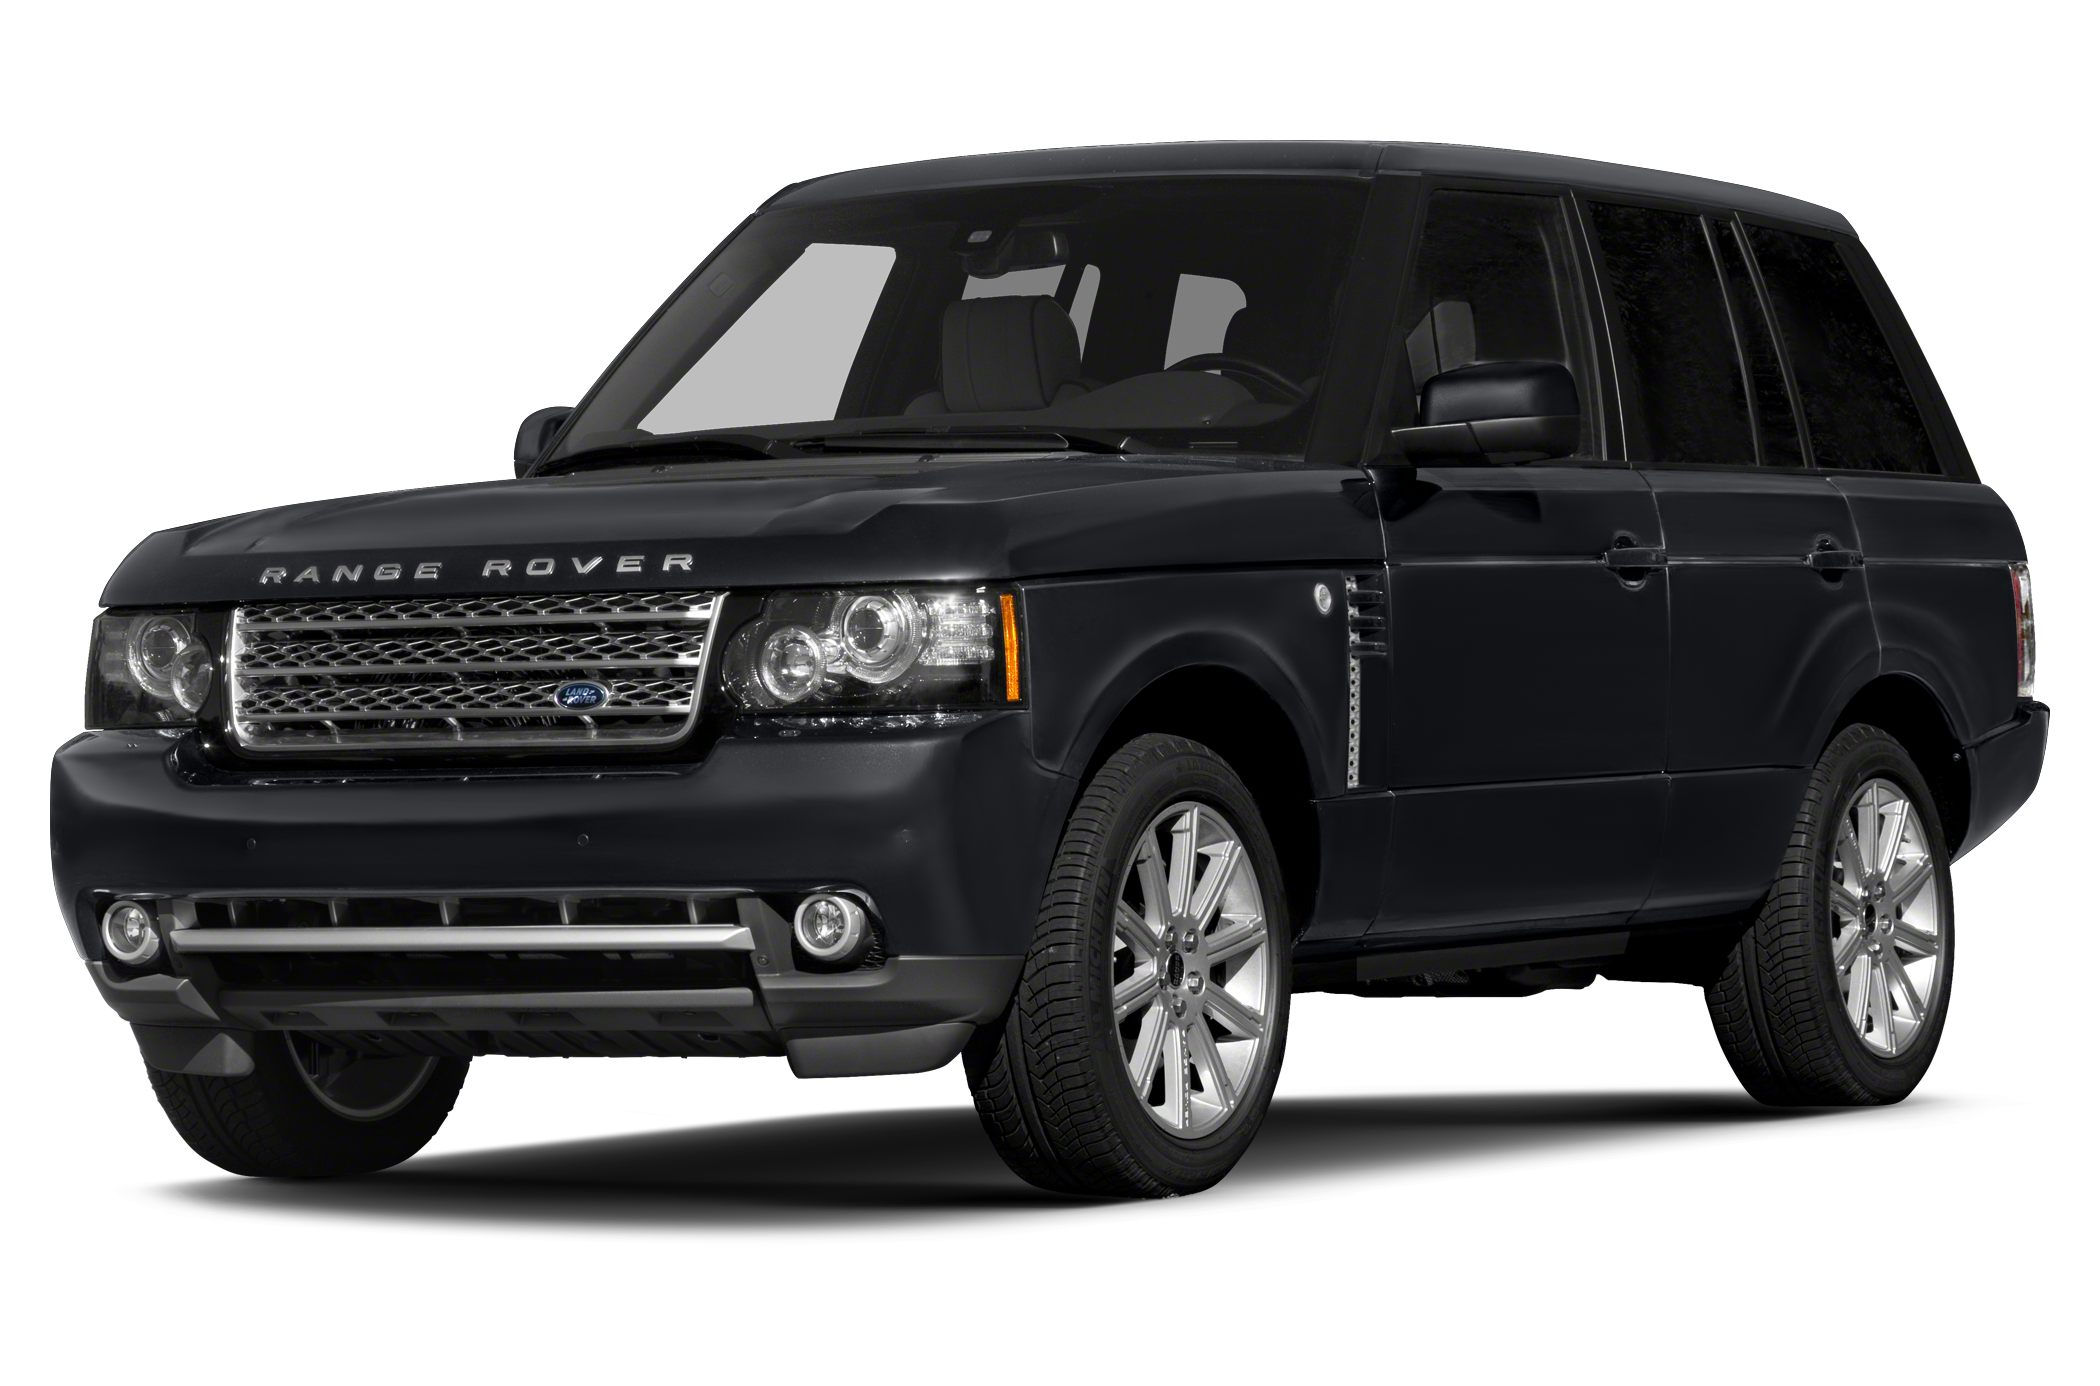 2012 Land Rover Range Rover HSE SUV for sale in Dallas for $62,751 with 26,167 miles.